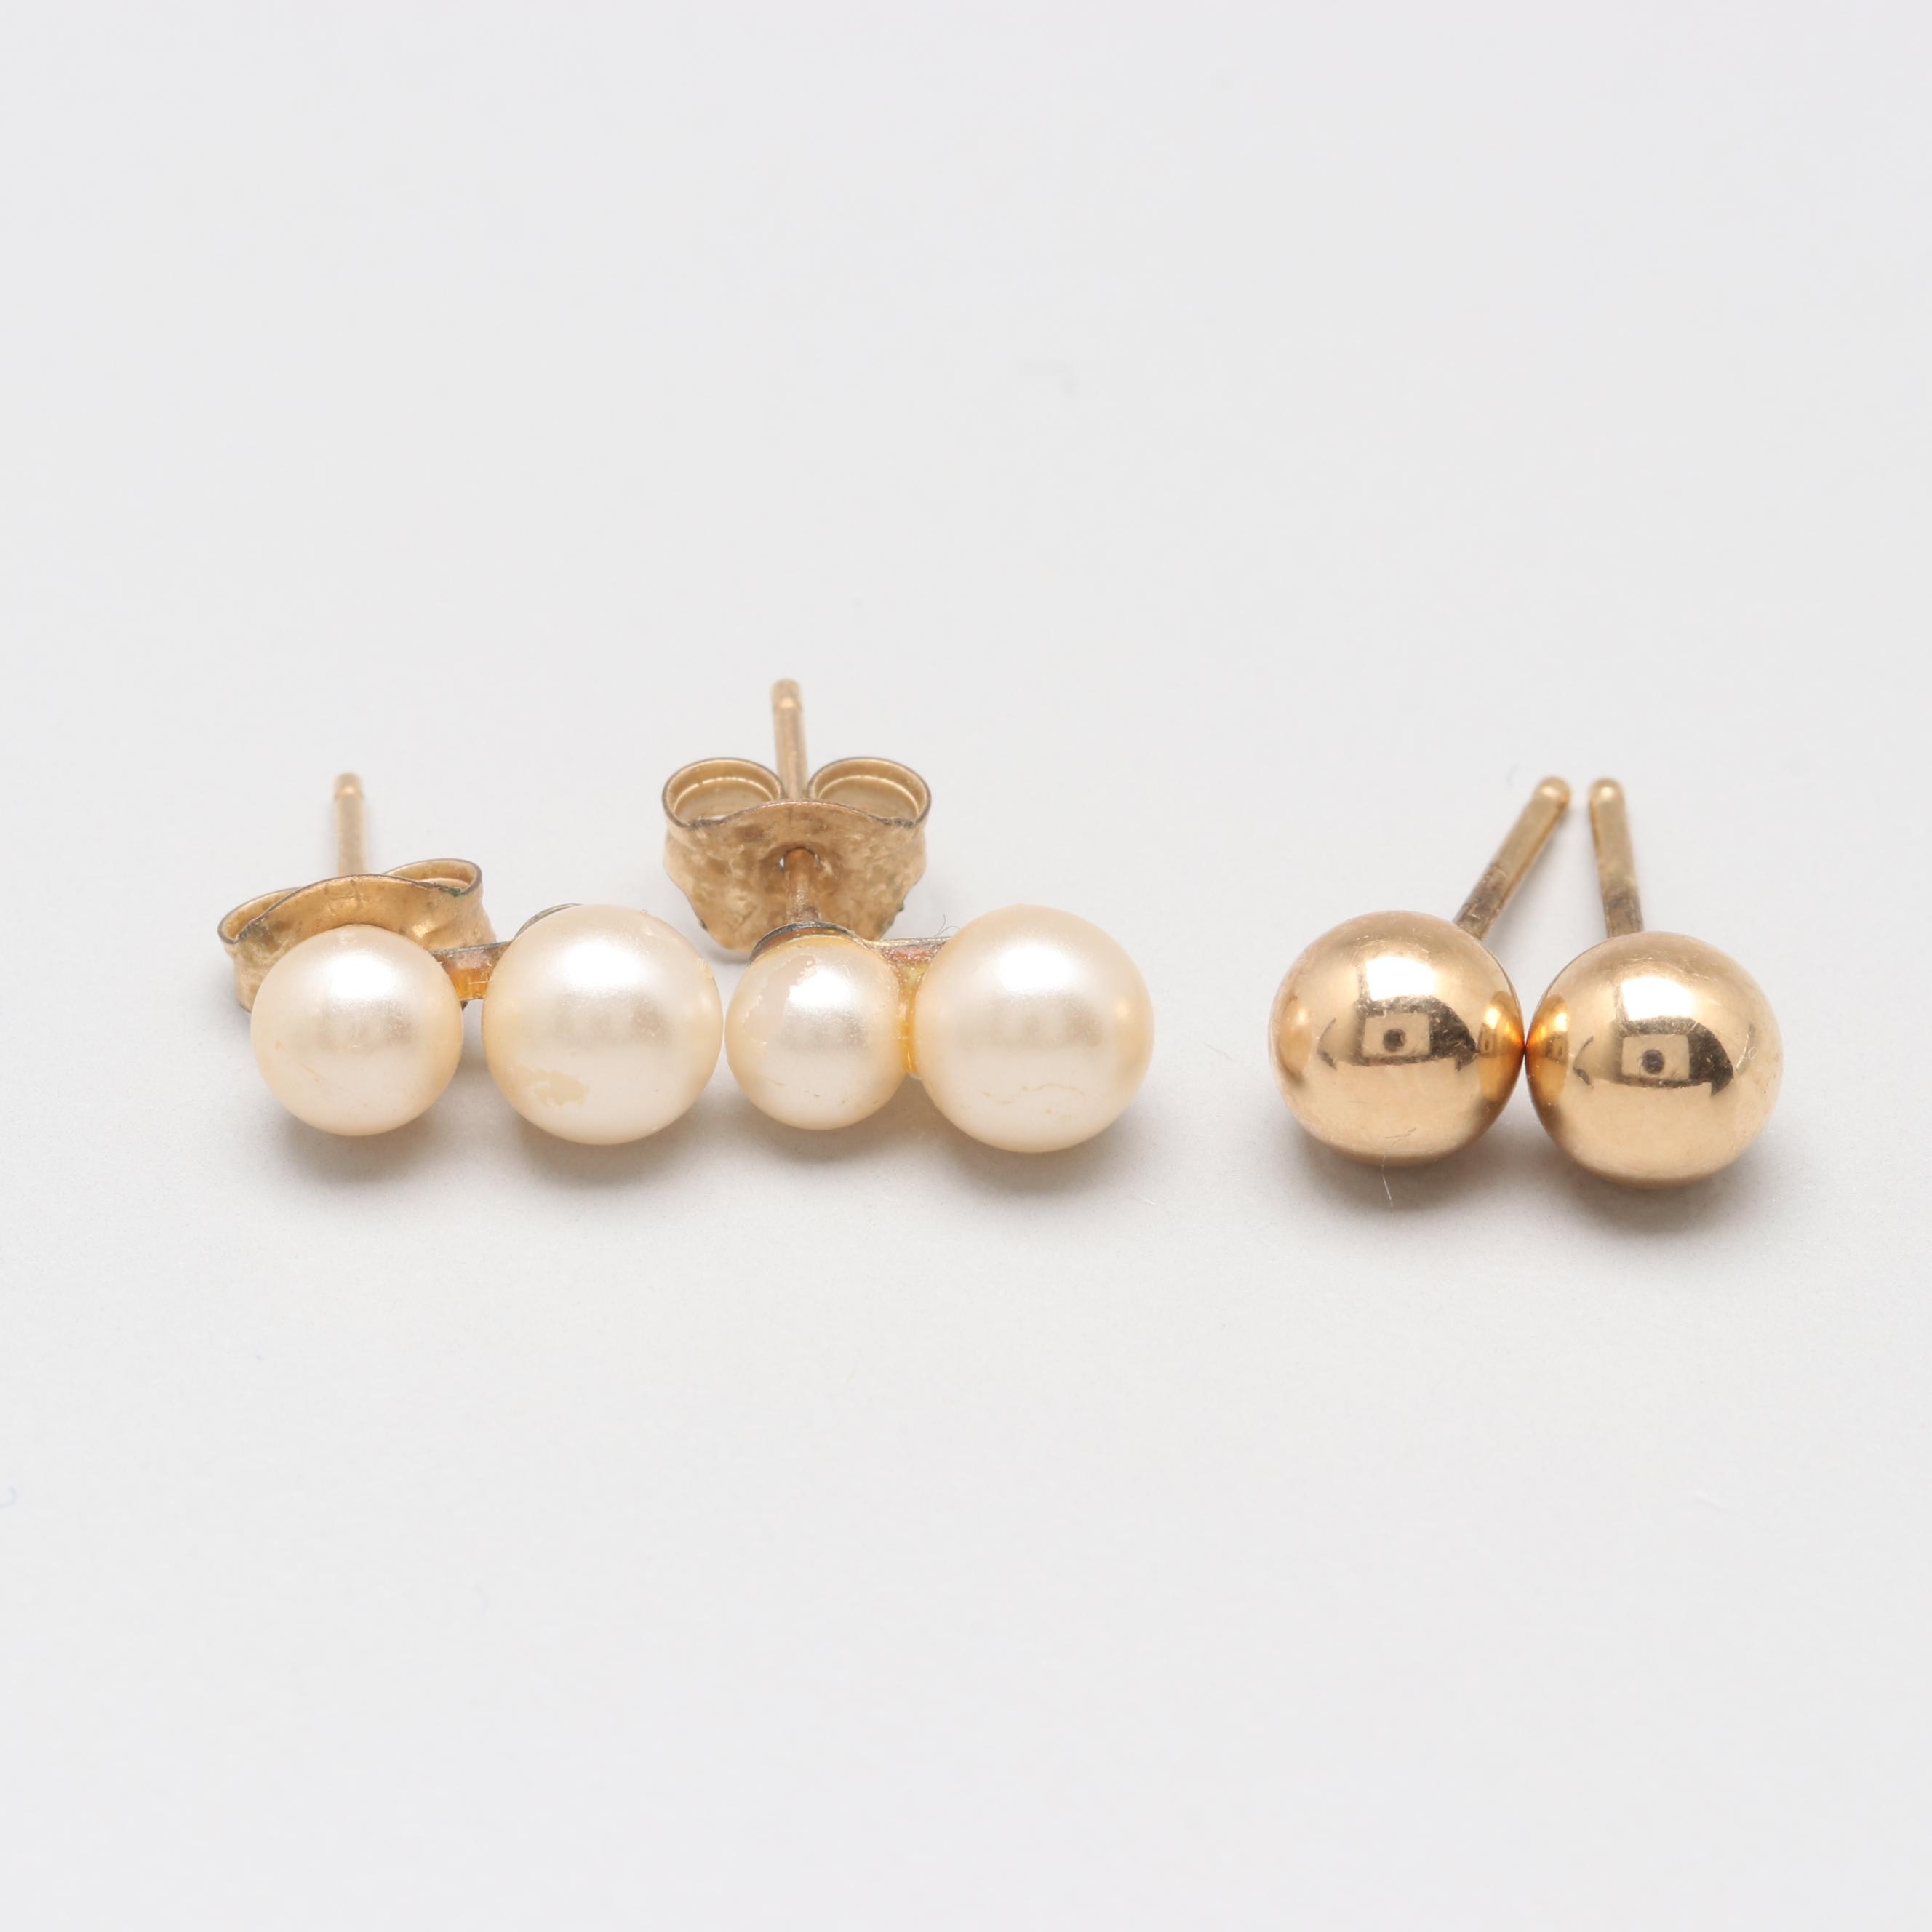 14K Yellow Gold Earrings Including Imitation Pearls